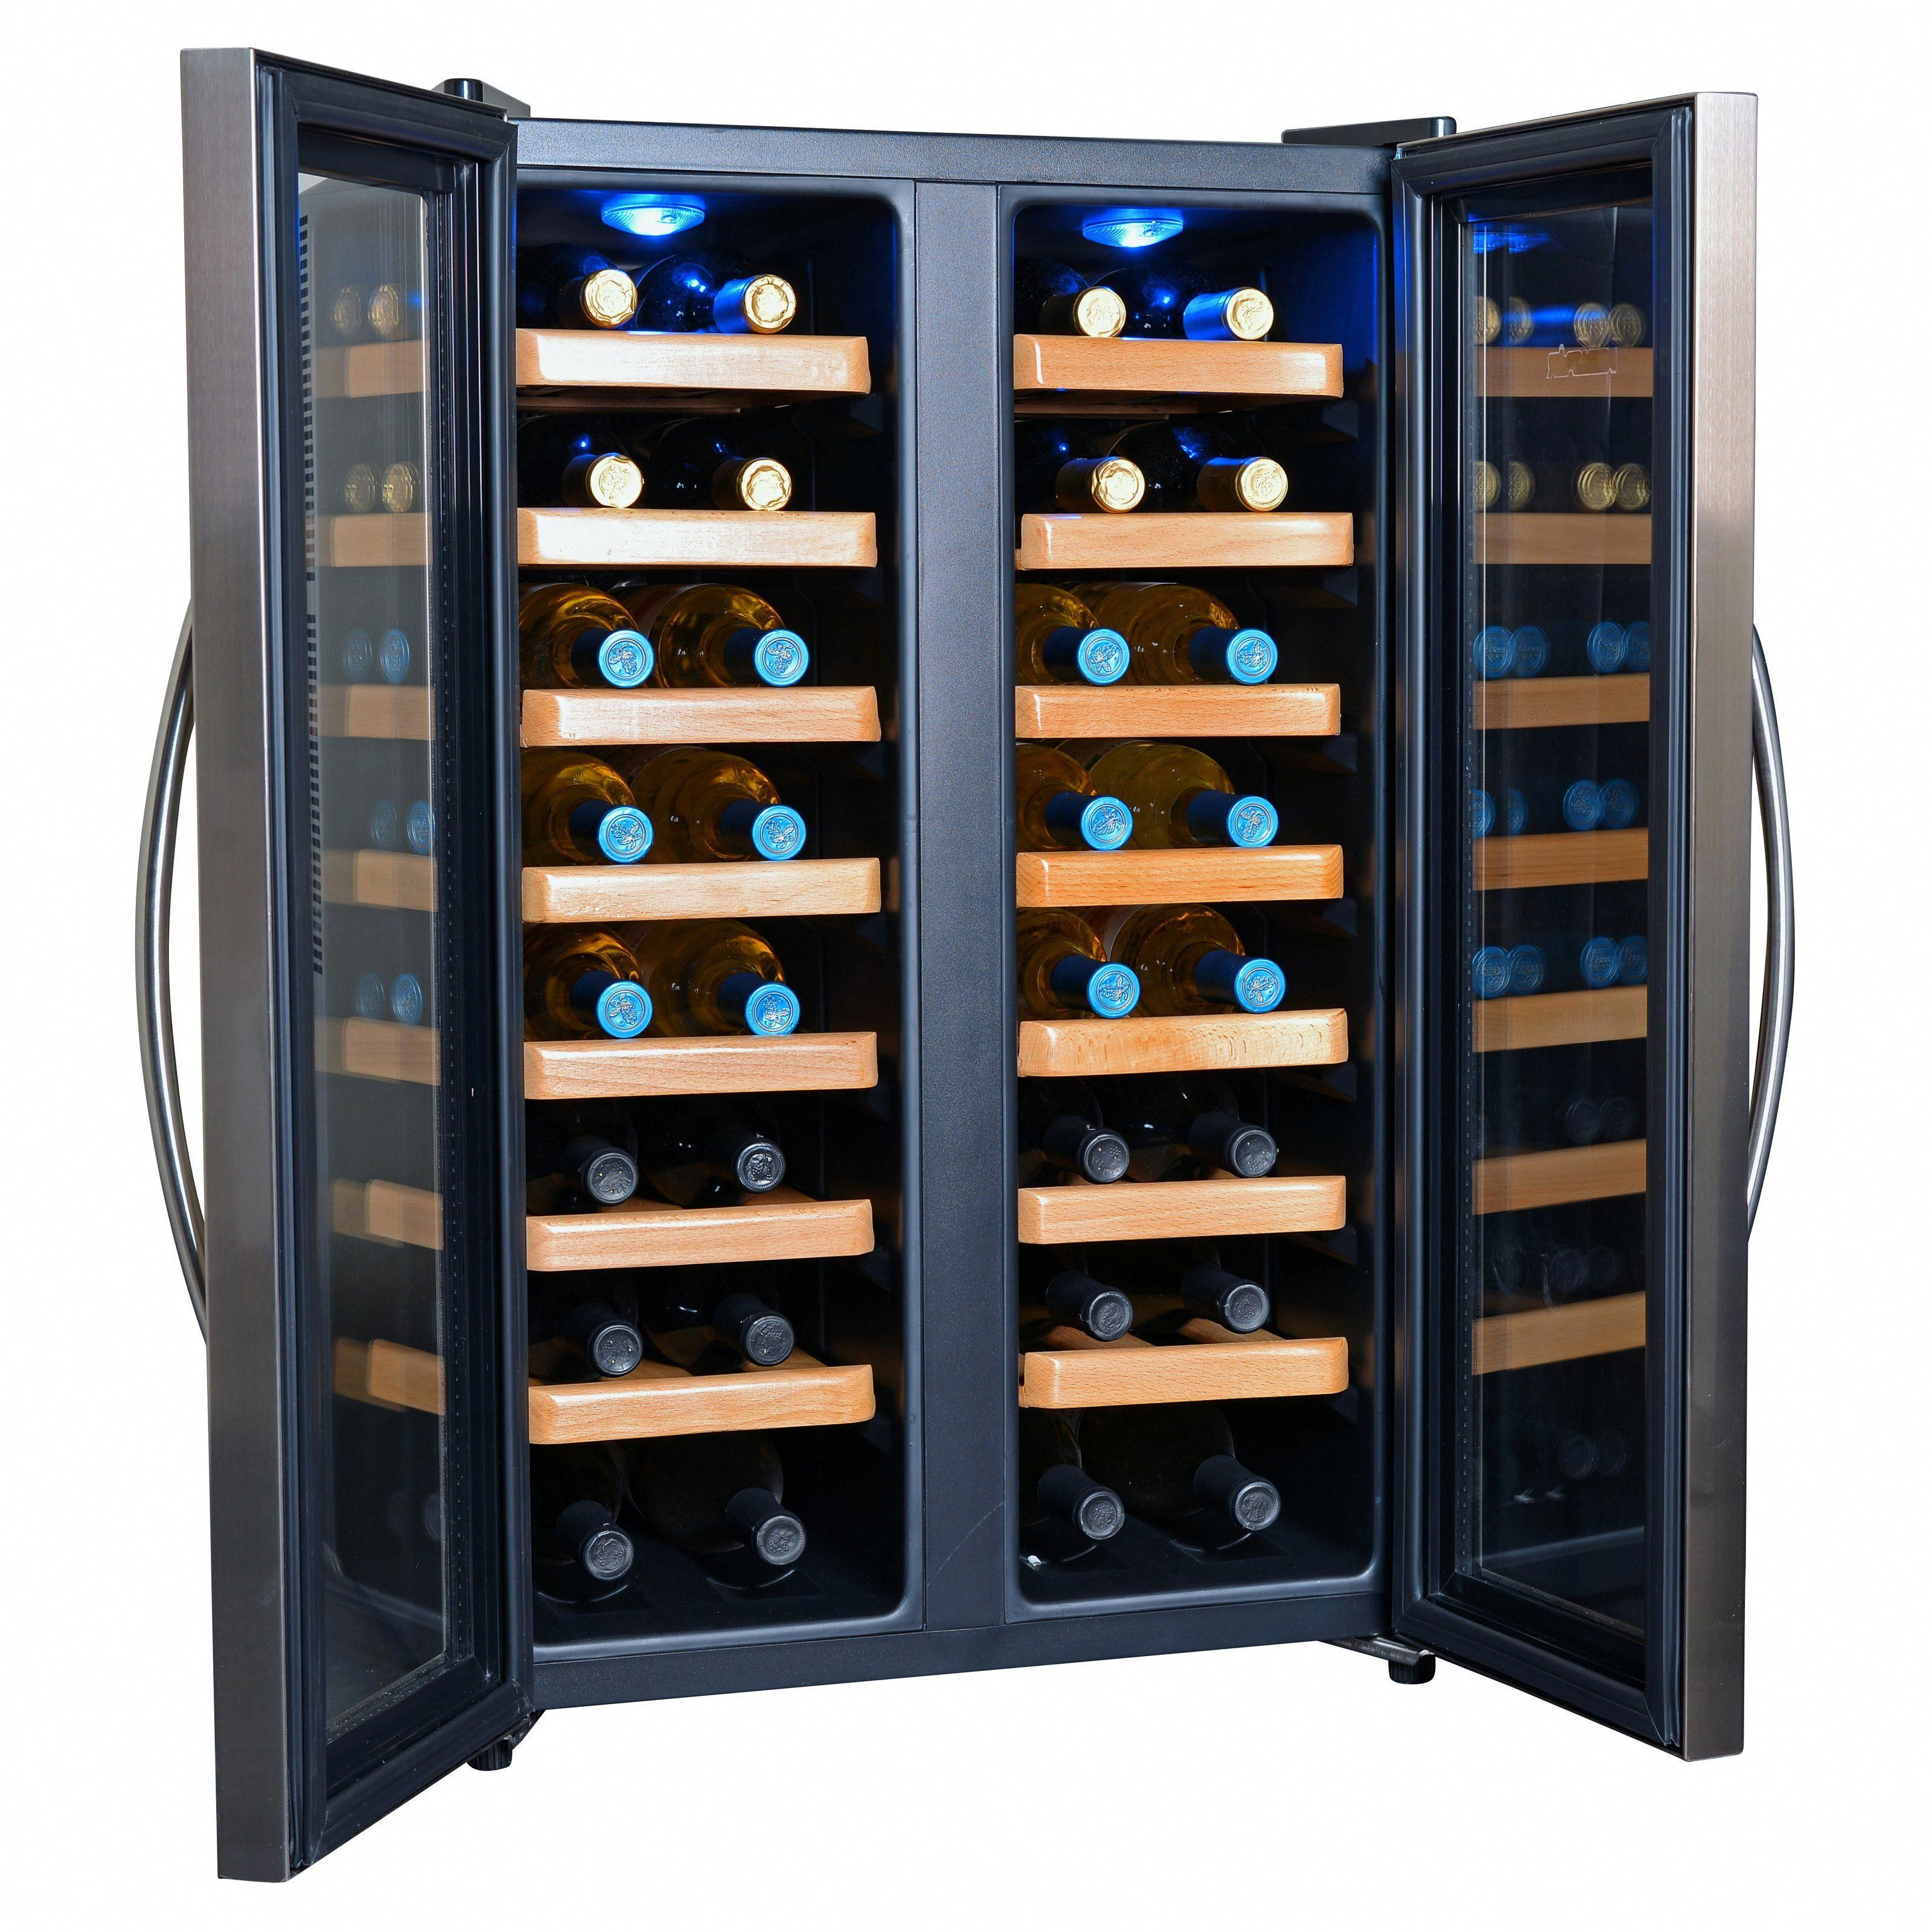 If You Want Good Quality Beer Italian Language Wines Are Definitely Some Of The Best To Con Thermoelectric Wine Cooler Dual Zone Wine Cooler Wine Refrigerator